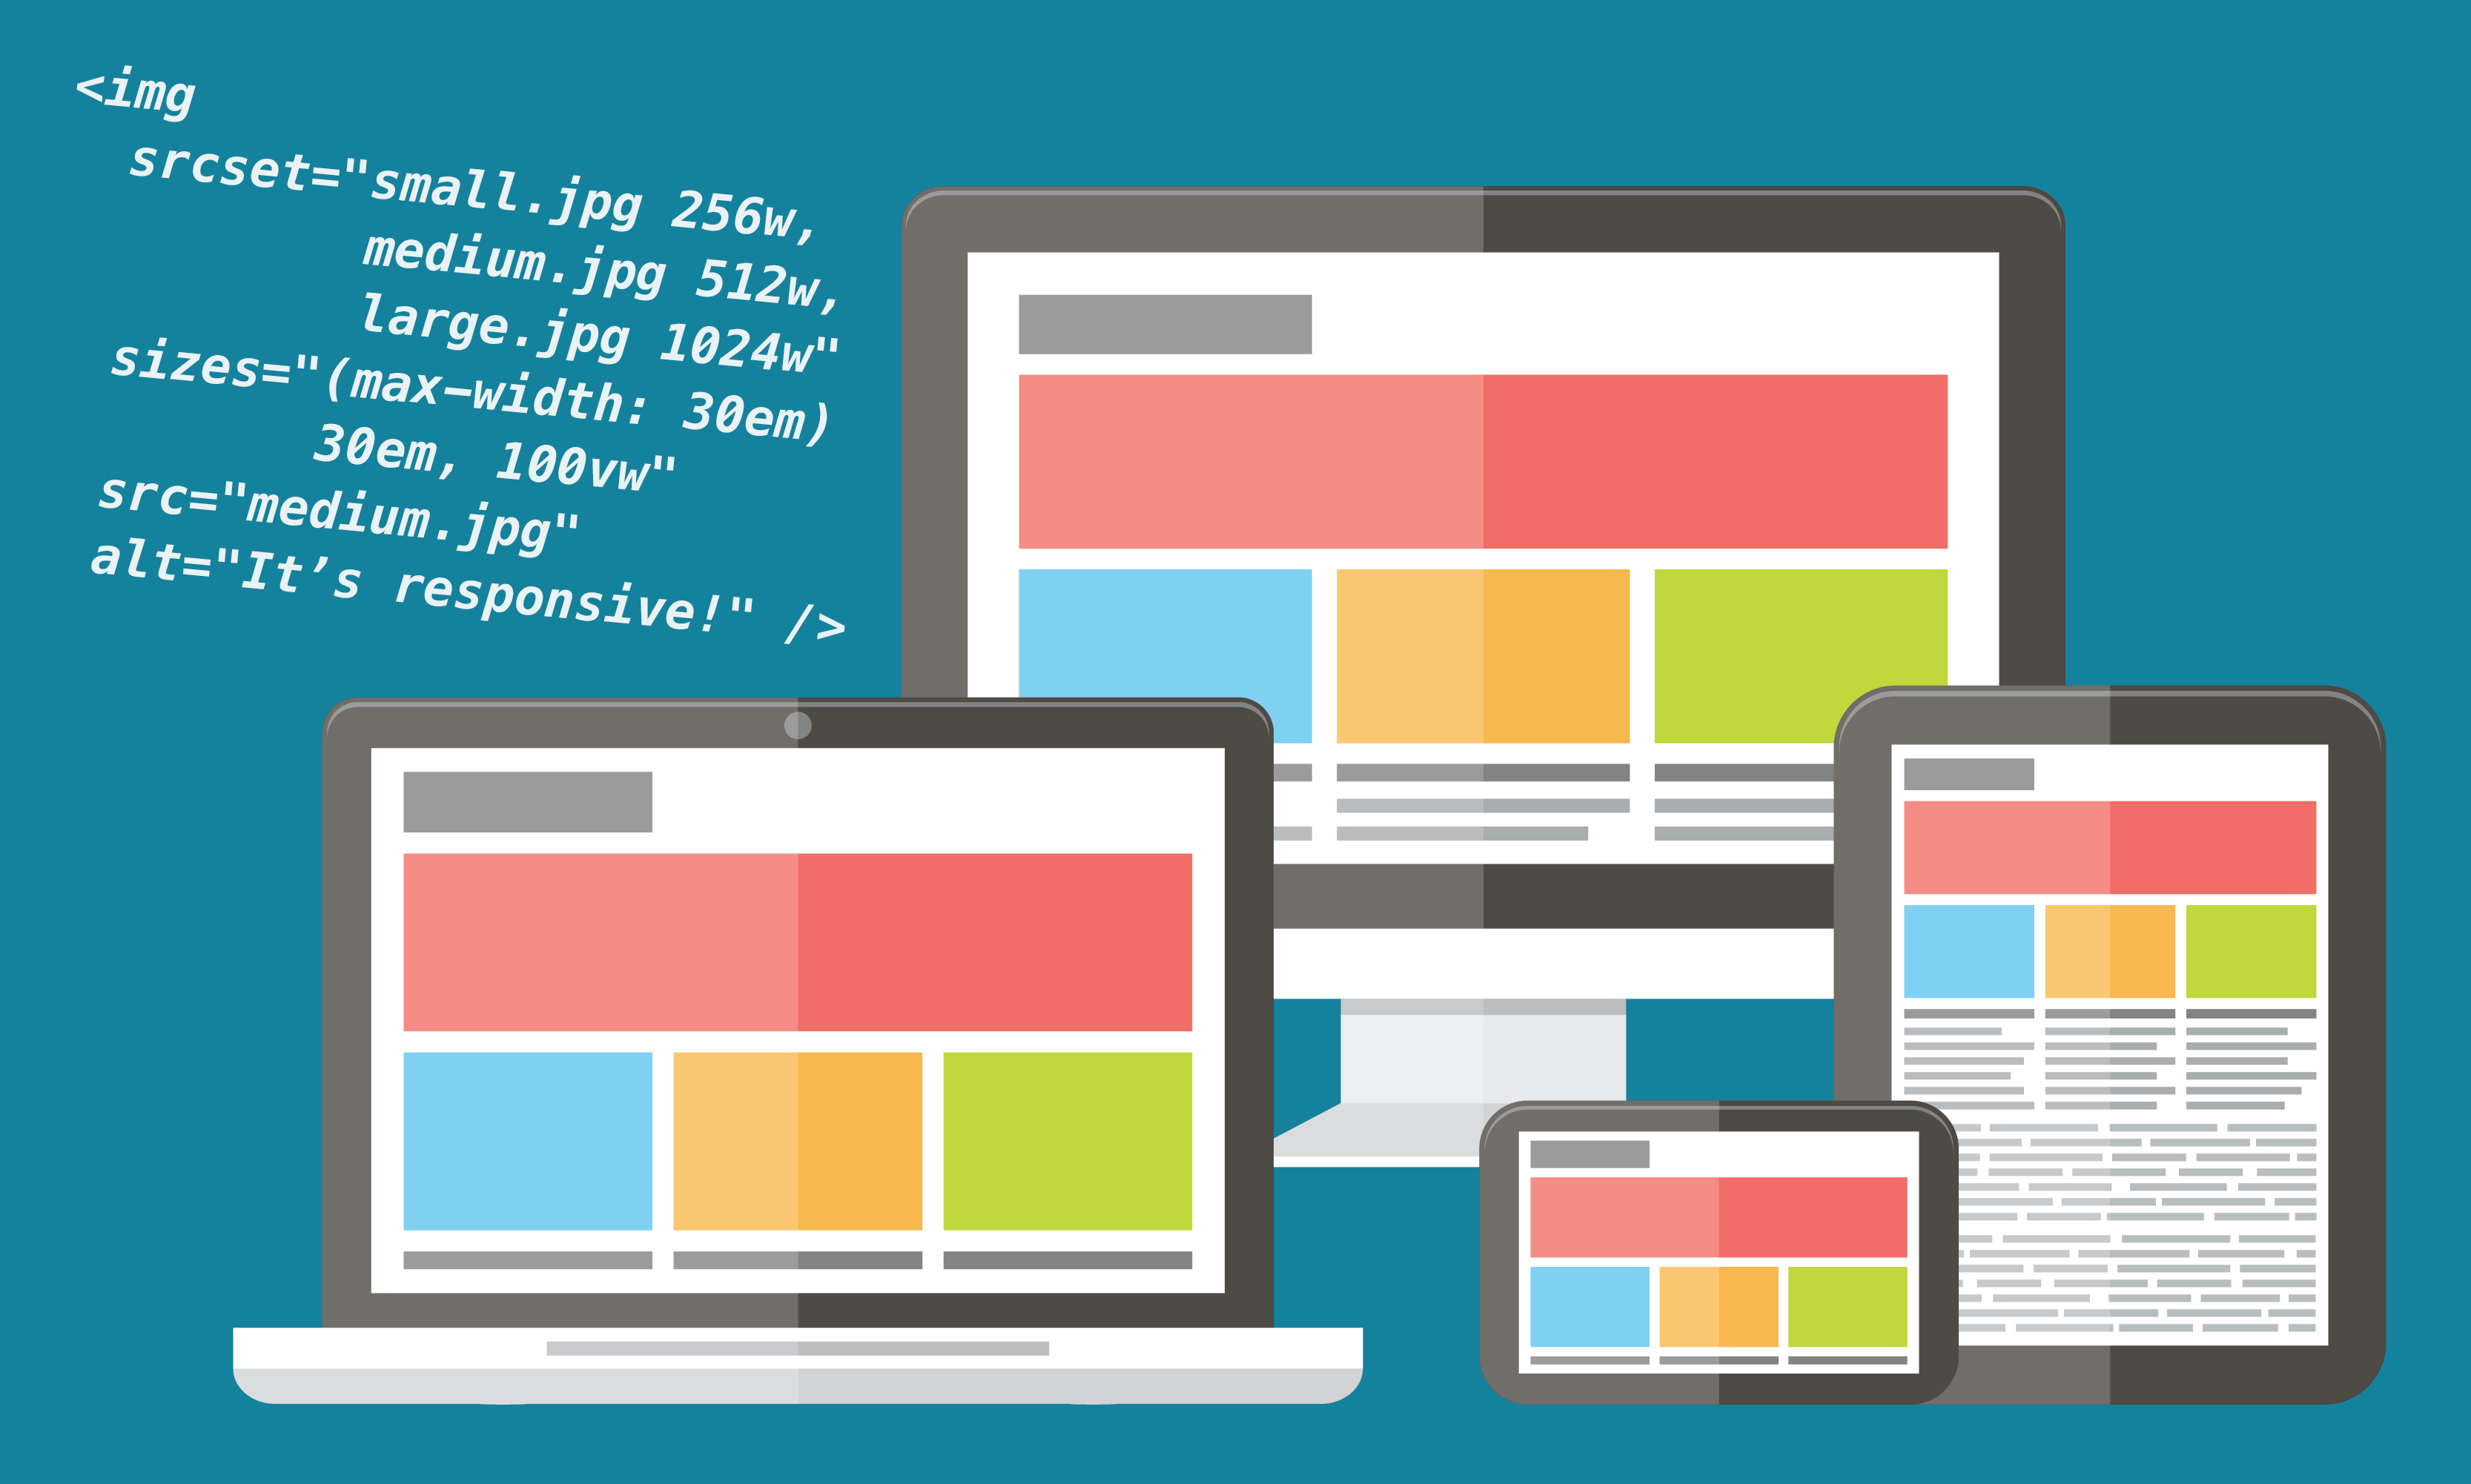 Responsive Images: The srcset and sizes HTML Image Attributes